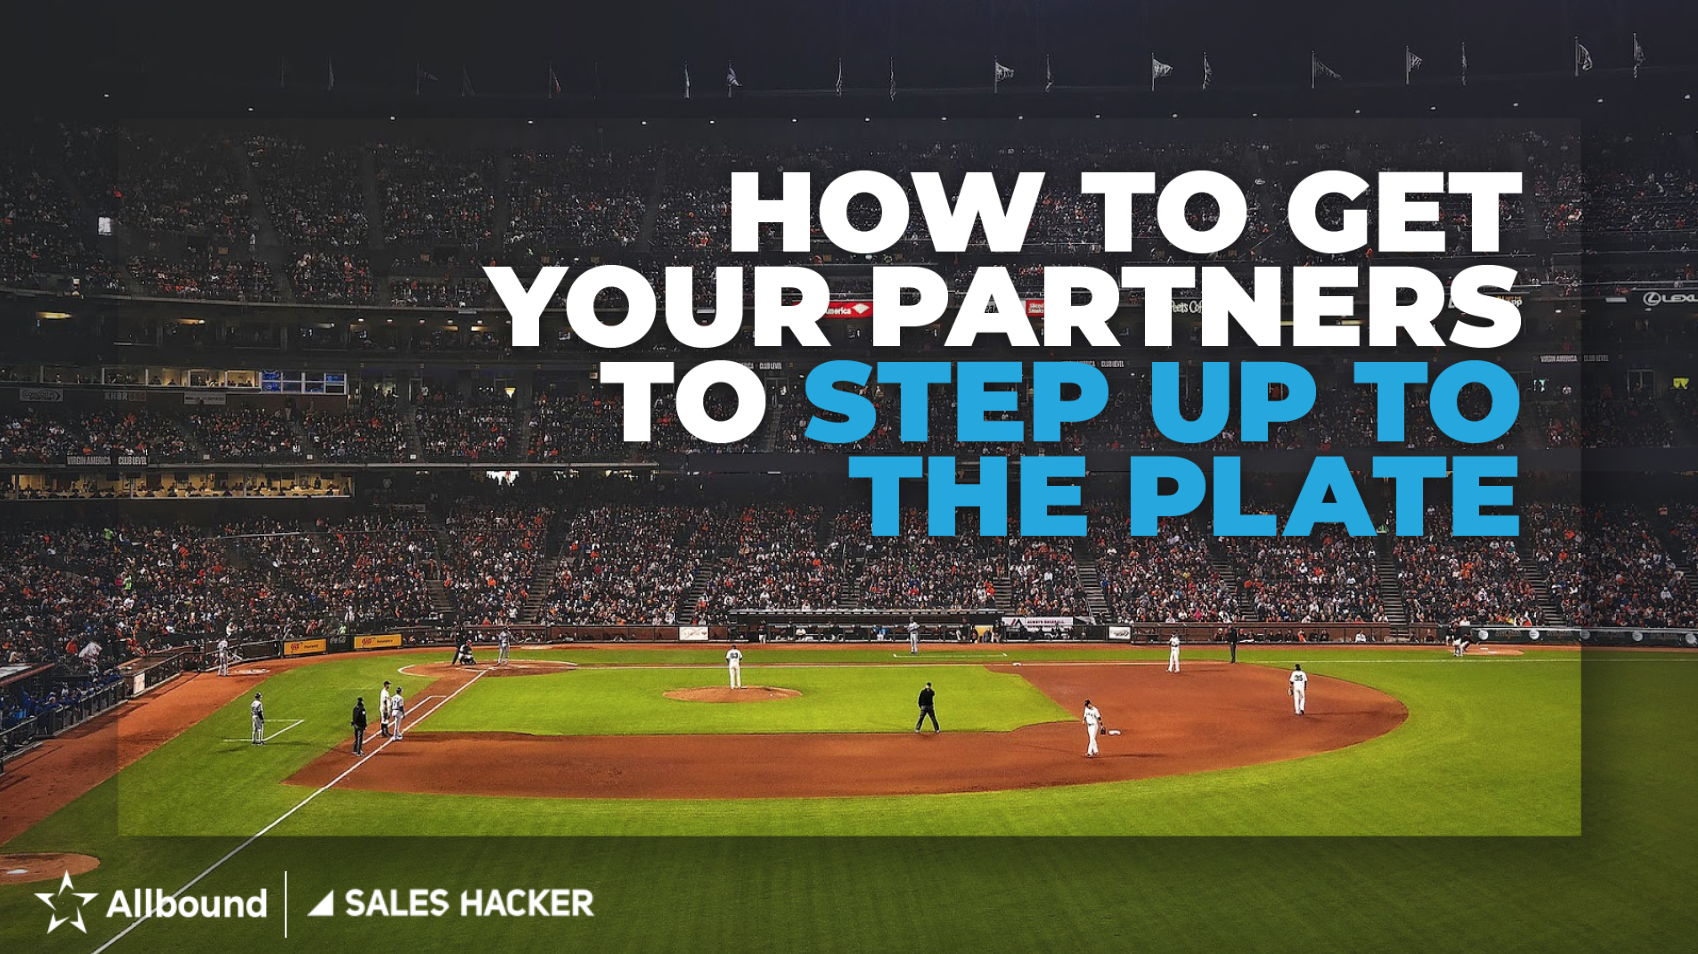 How to Get Your Partners to Step up to the Plate